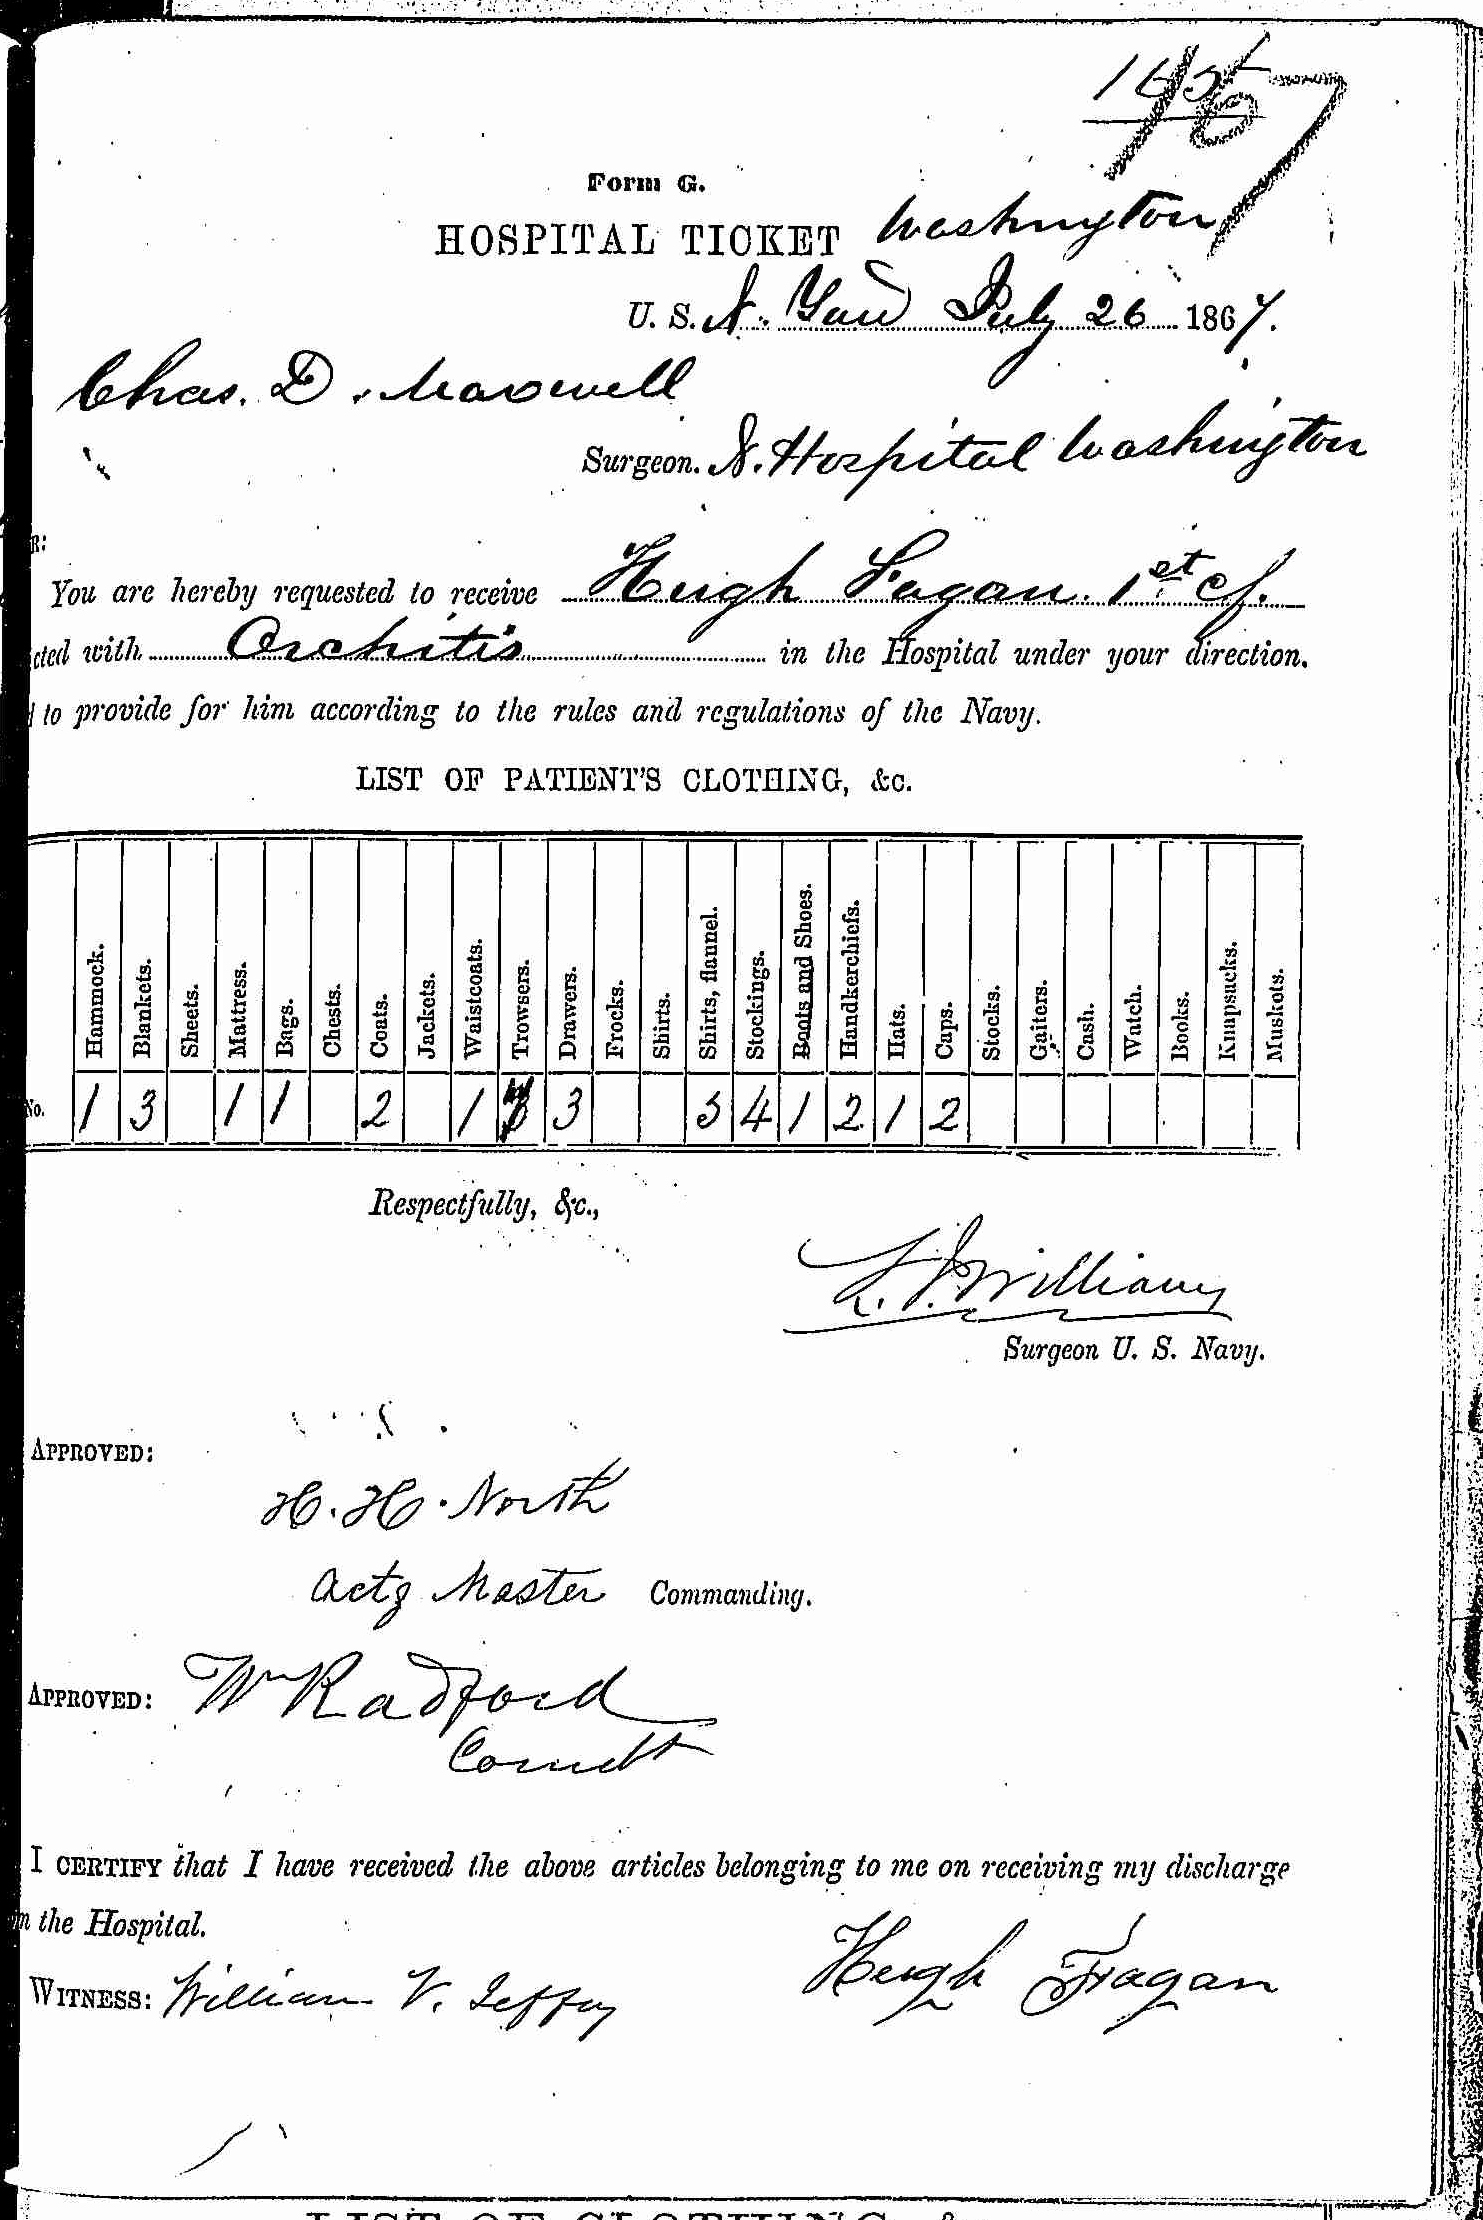 Entry for Hugh Fagan (page 1 of 2) in the log Hospital Tickets and Case Papers - Naval Hospital - Washington, D.C. - 1866-68